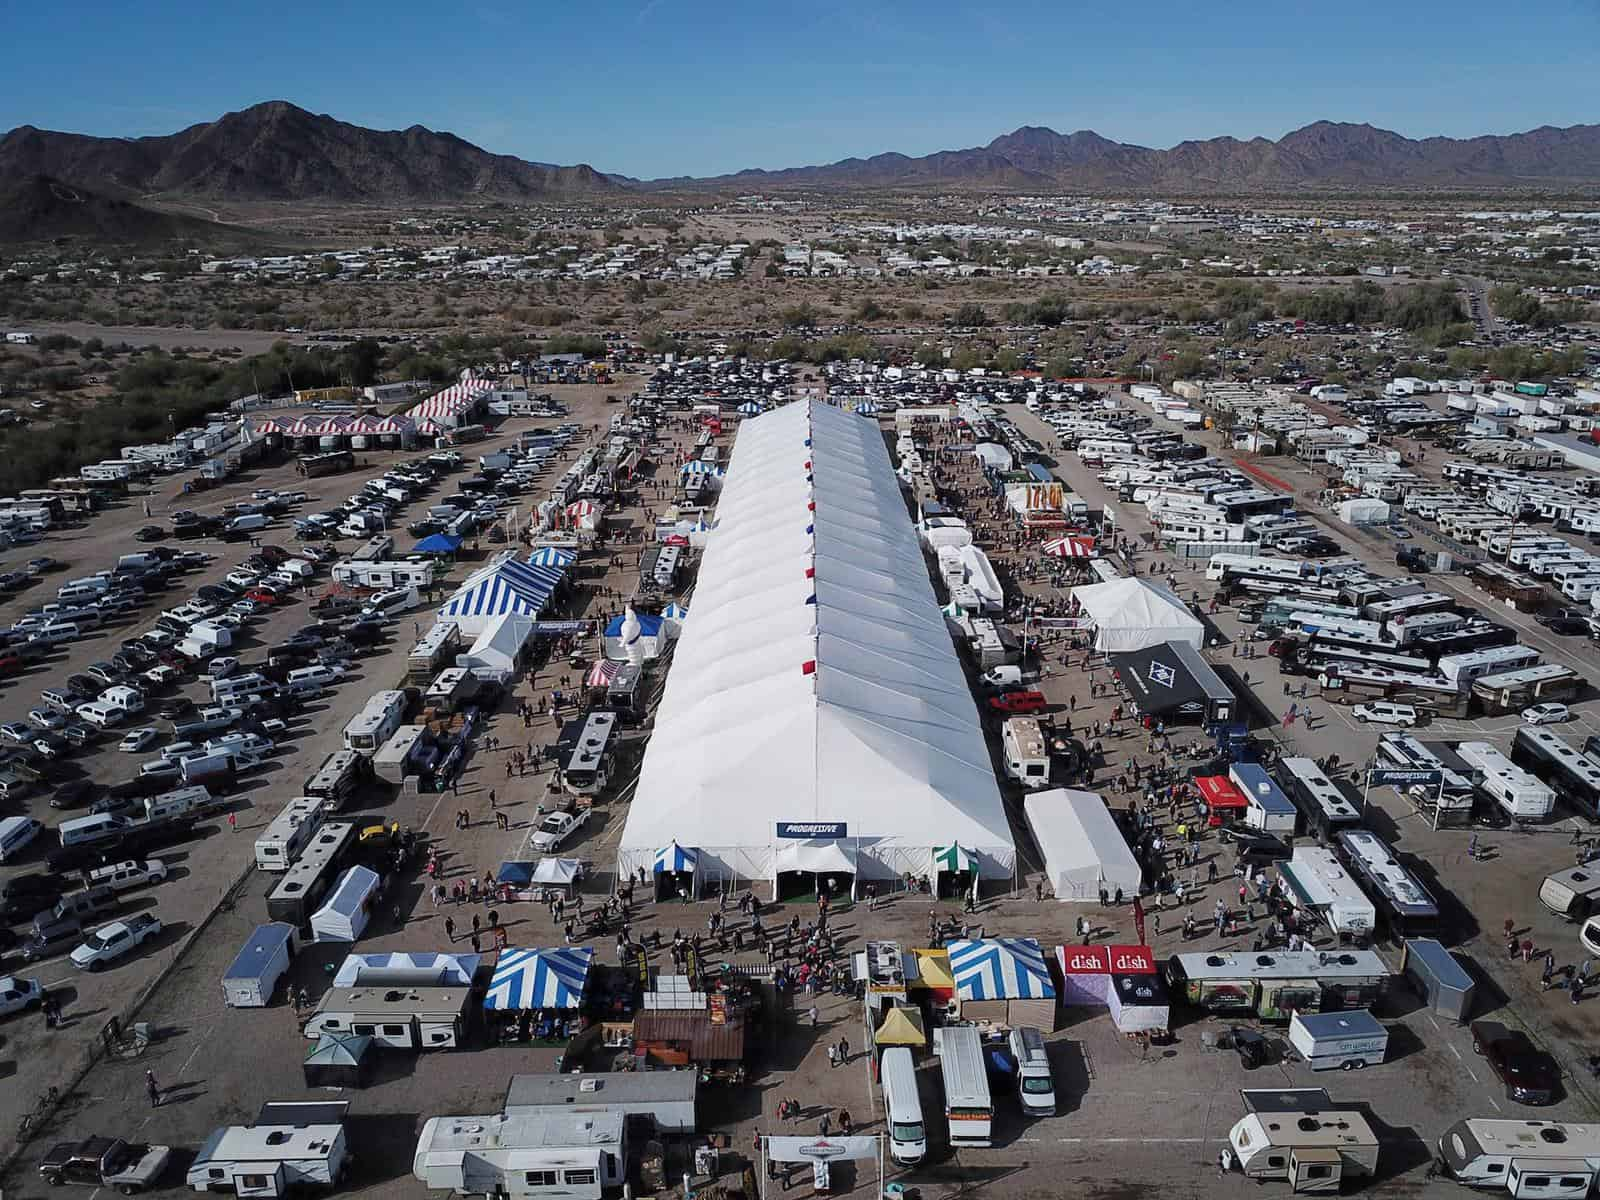 Quartzsite RV Show Parking Lot